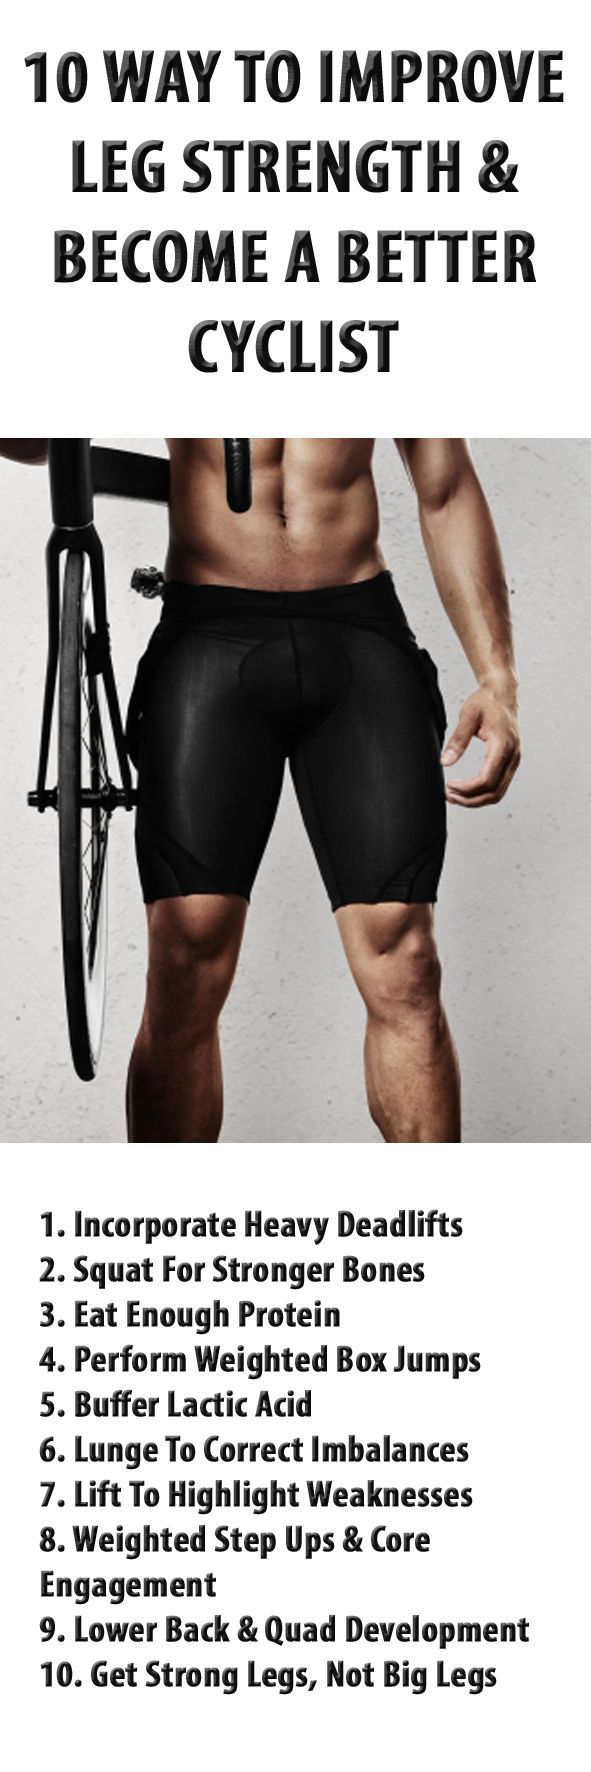 .10 ways to improve leg strength and become a better cyclist.